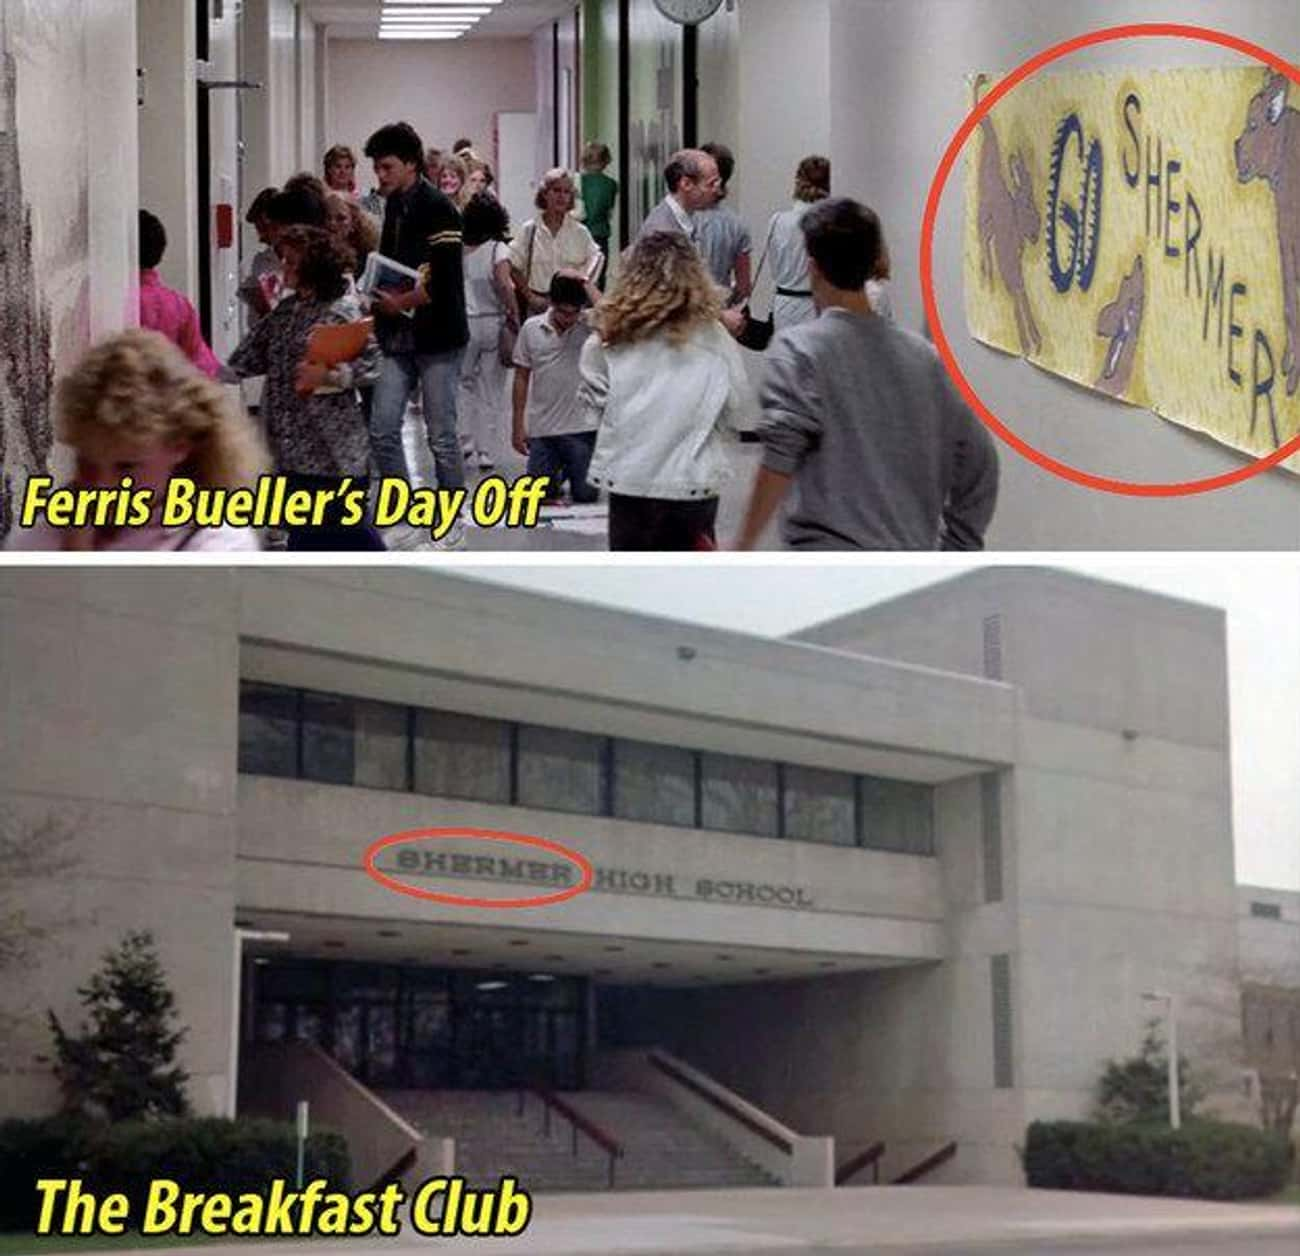 Shared Universe is listed (or ranked) 4 on the list Don't You Forget About These Small But Poignant Details From 'The Breakfast Club'